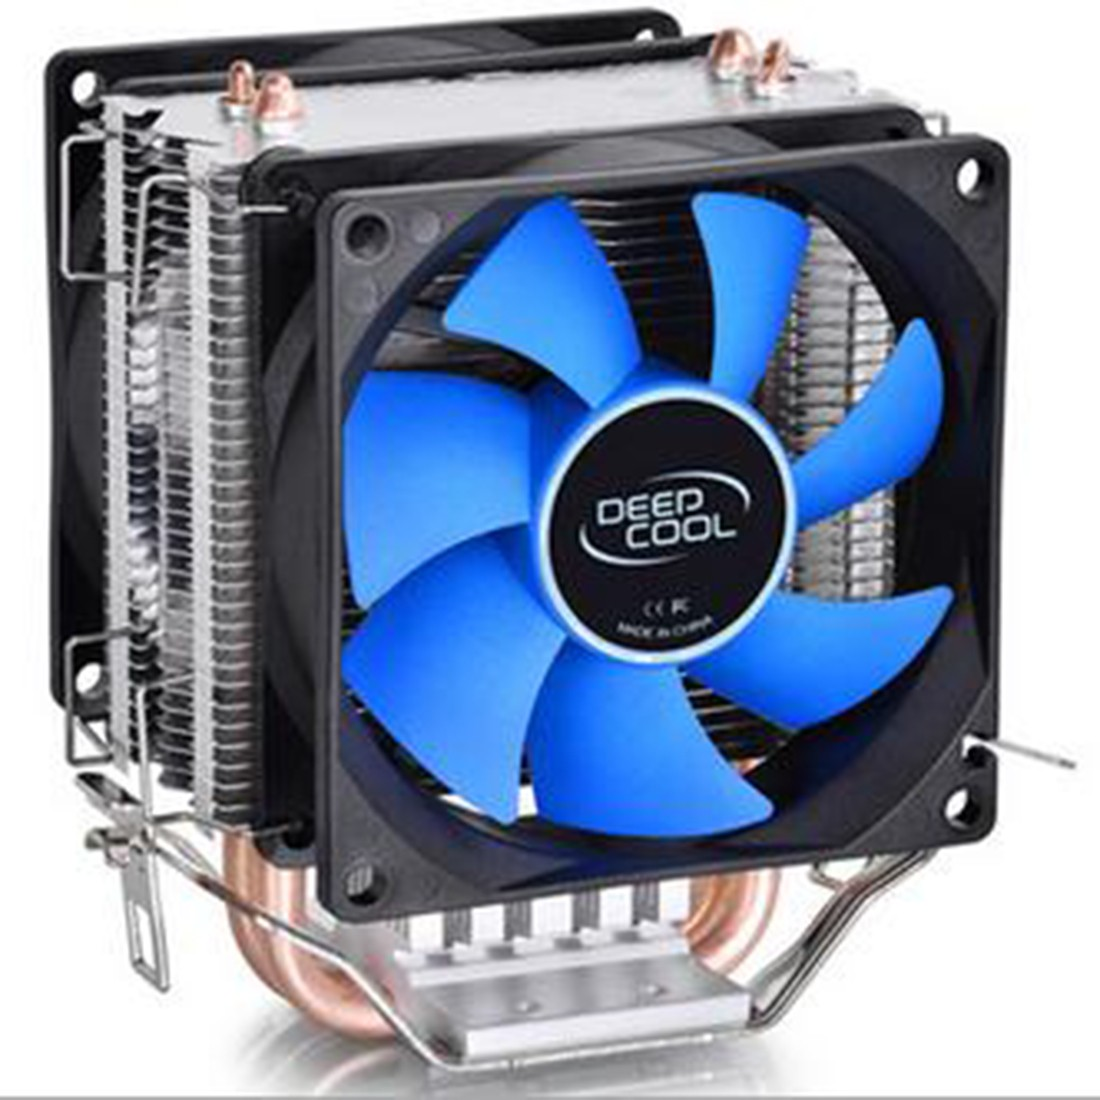 2016 Hot Selling Practical CPU Cooling Fan Heat Sink Durable Detachable Blades Dual Heat Pipe for Computer PC medium computer cpu plastic cooling fan leaves card blower heat sink